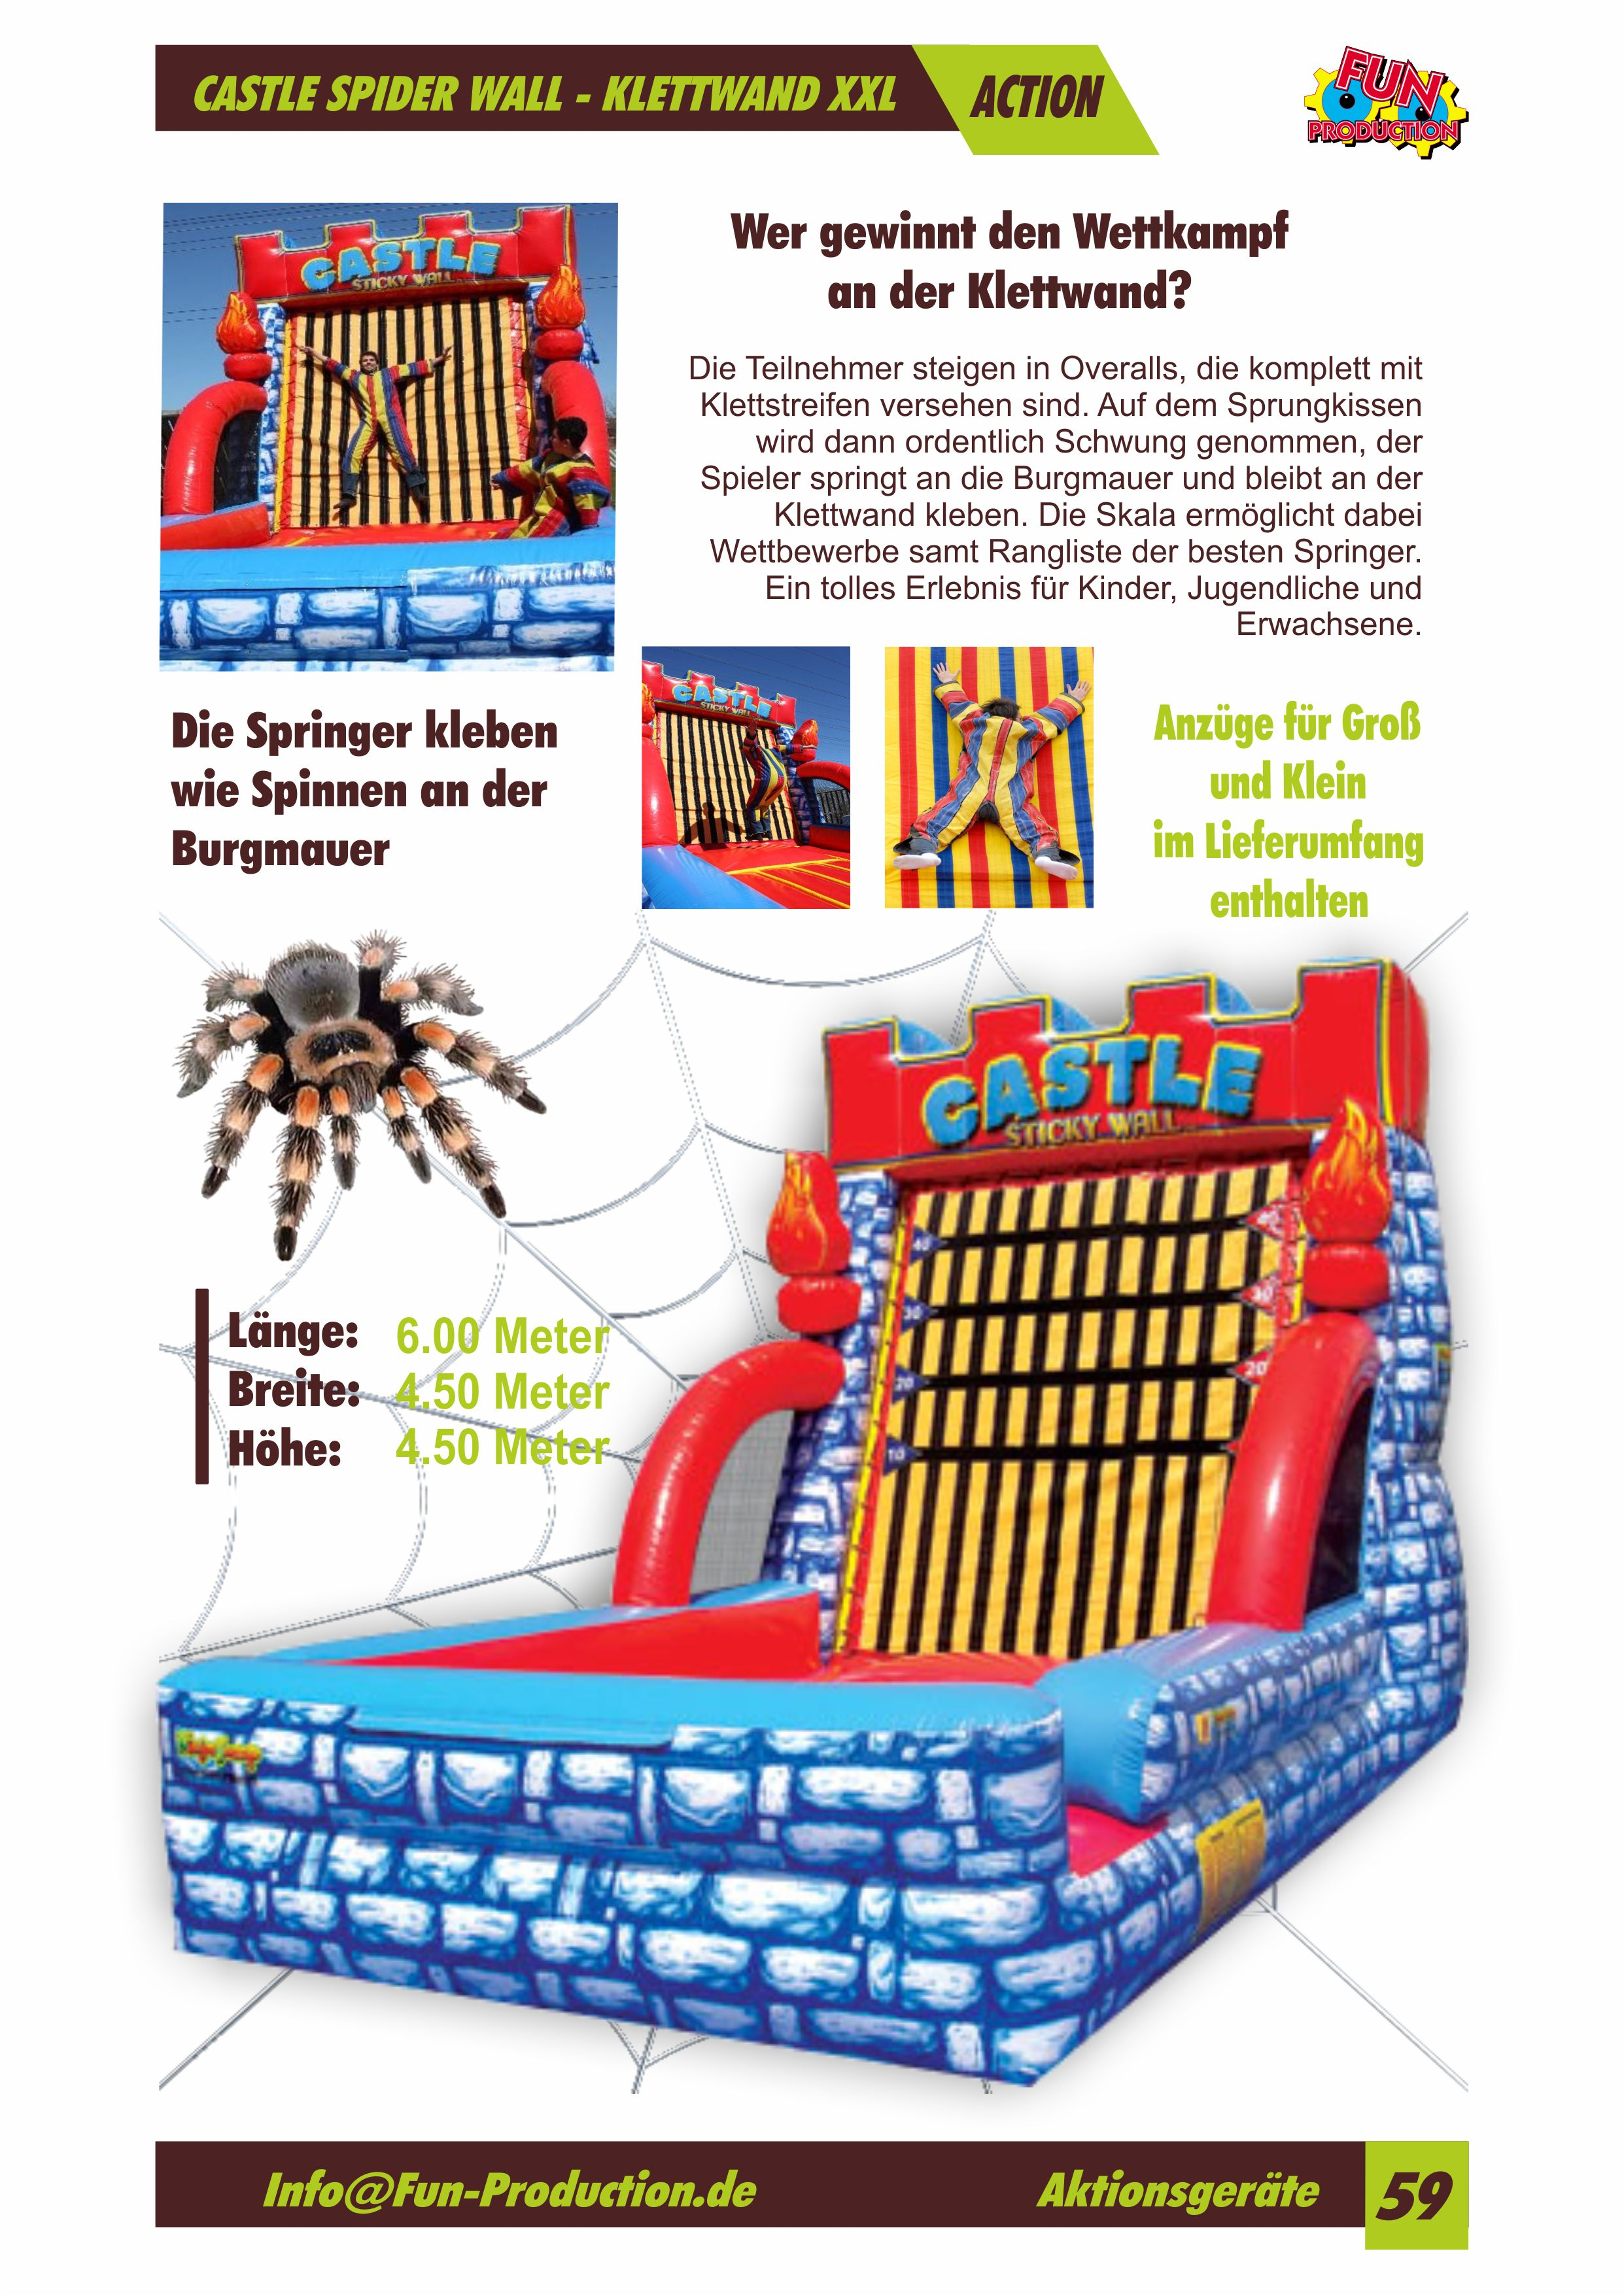 Castle Spider Wall Fun Production GmbH